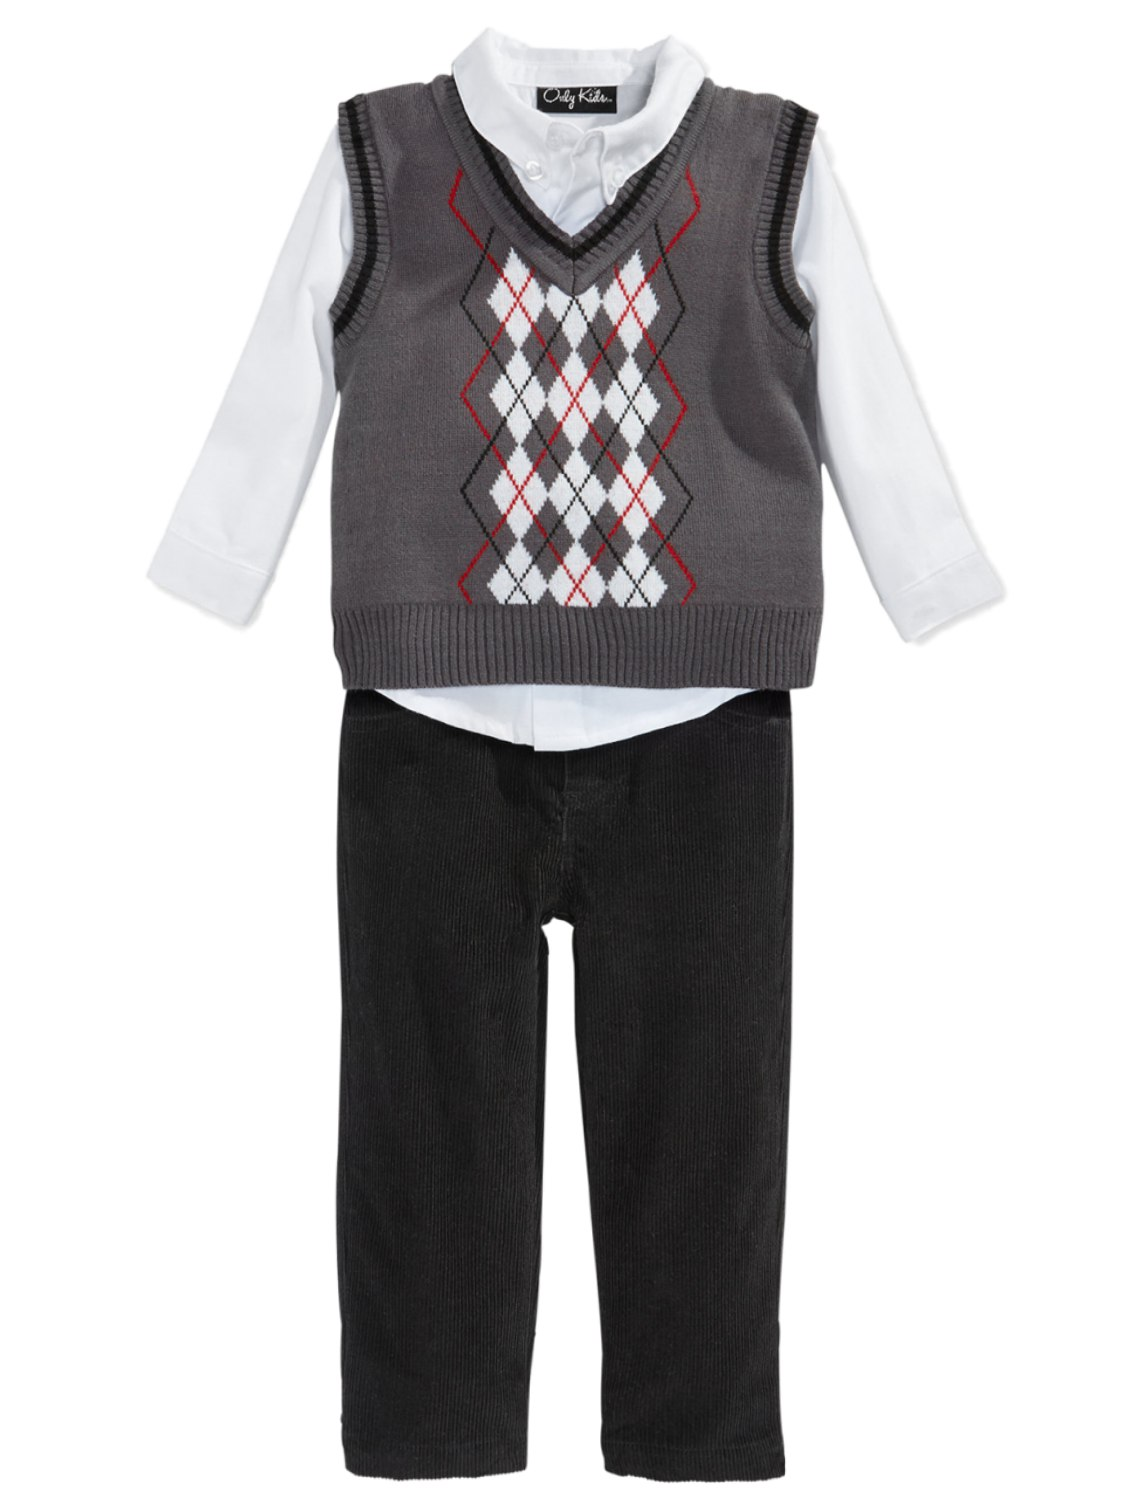 Only Kids Only Kids Infant Boys 3 Piece Dress Up Outfit Pants Shirt & Gray Sweater Vest